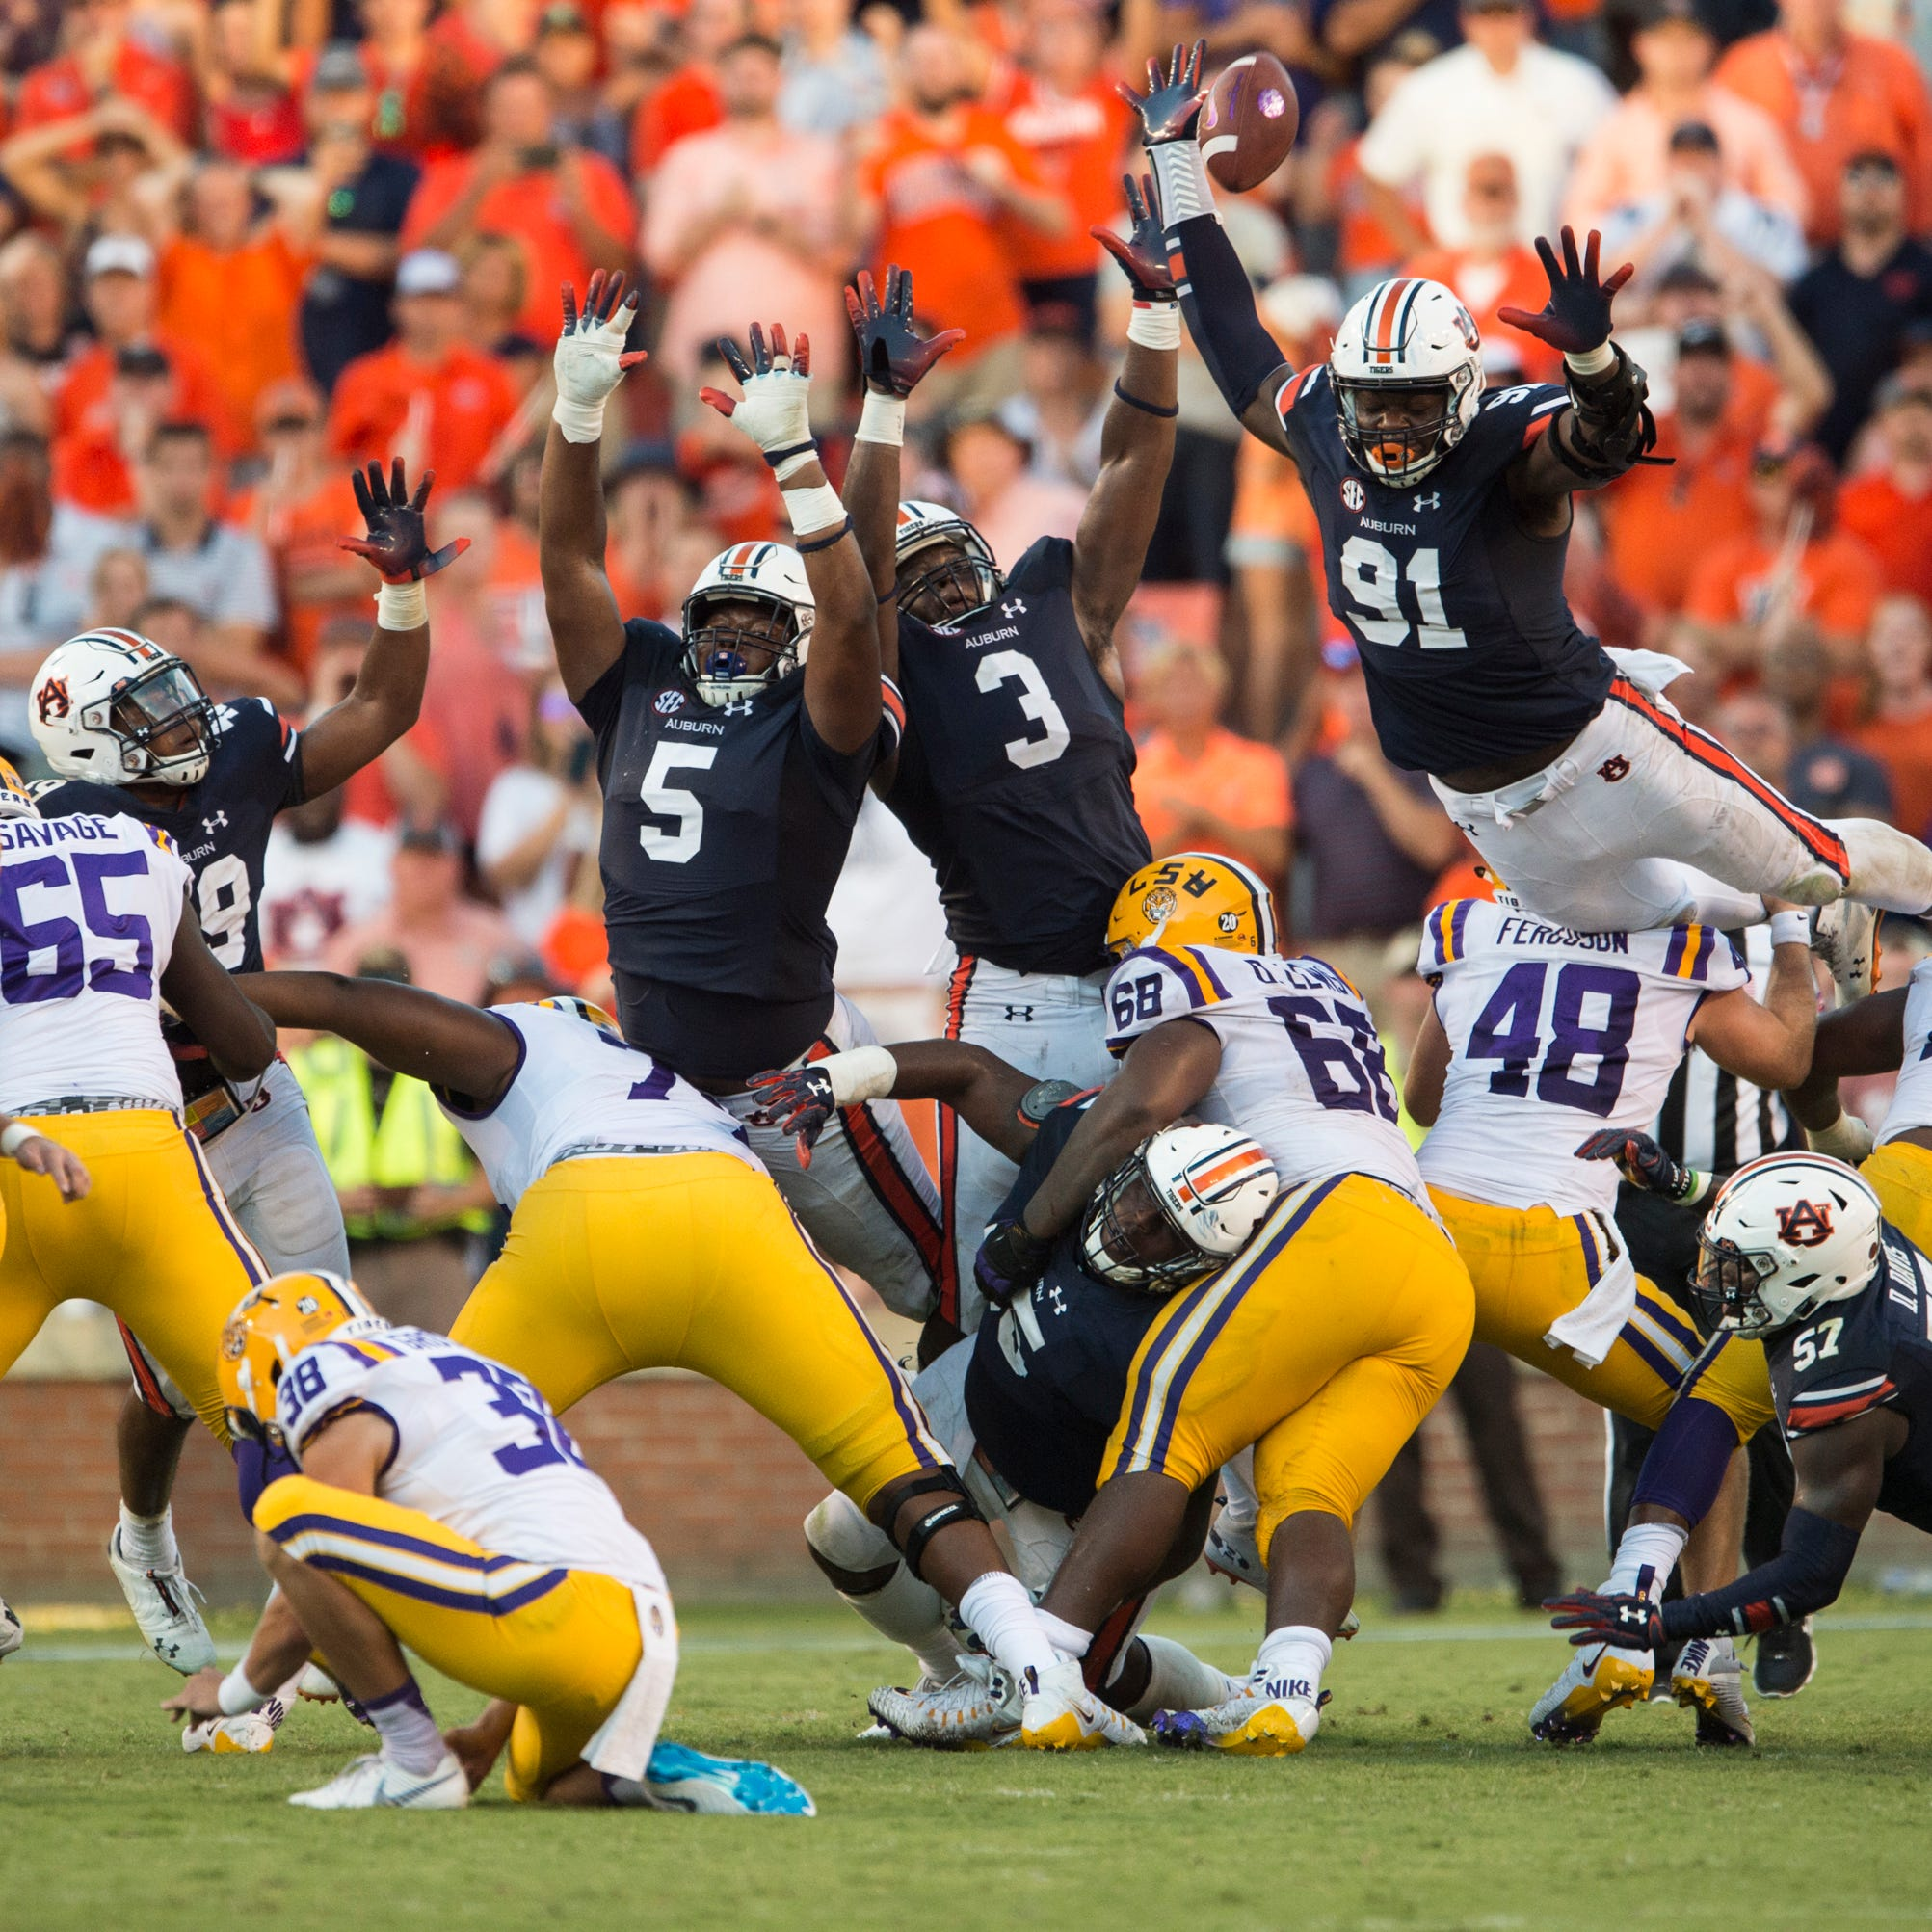 Voices of the SEC: LSU has Auburn's number, but Alabama has everyone's